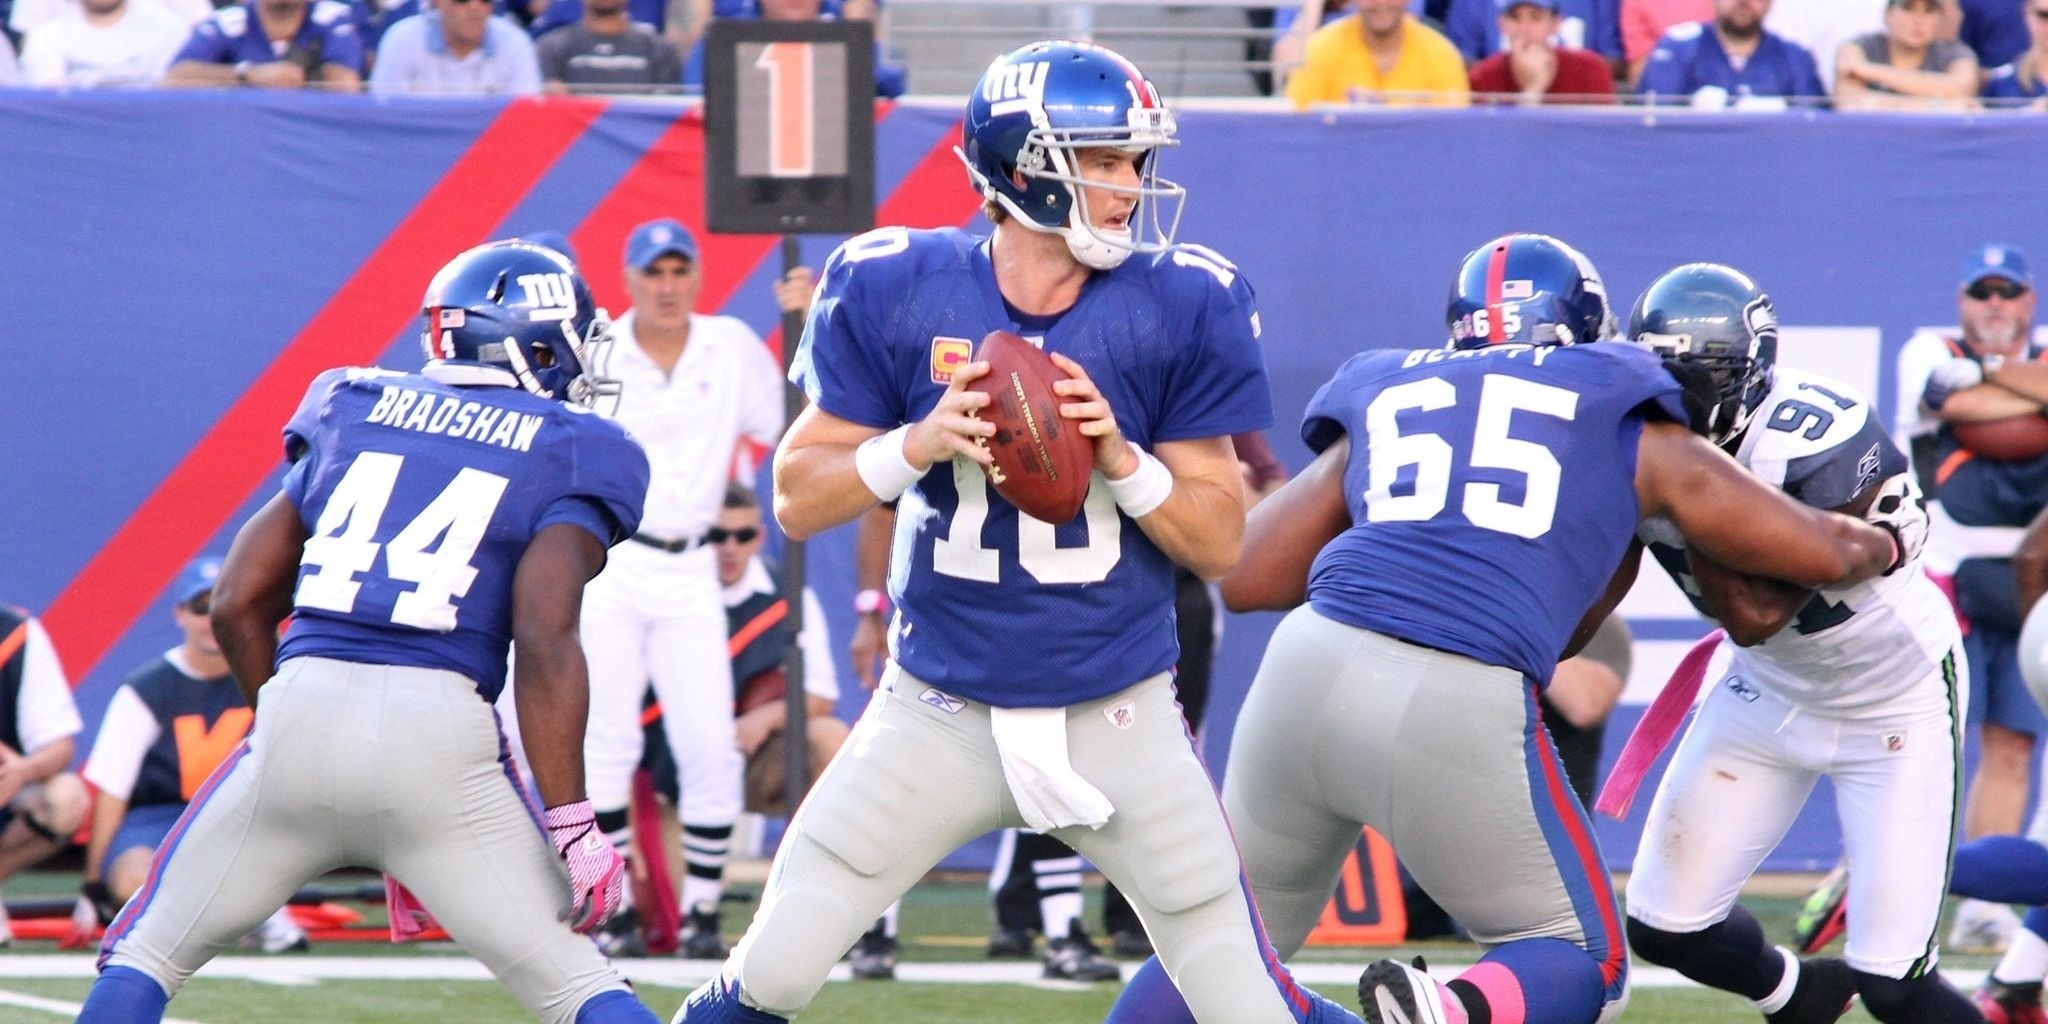 5b16aefd Jets Vs. Giants Live Stream: How To Watch the NFL Preseason Online